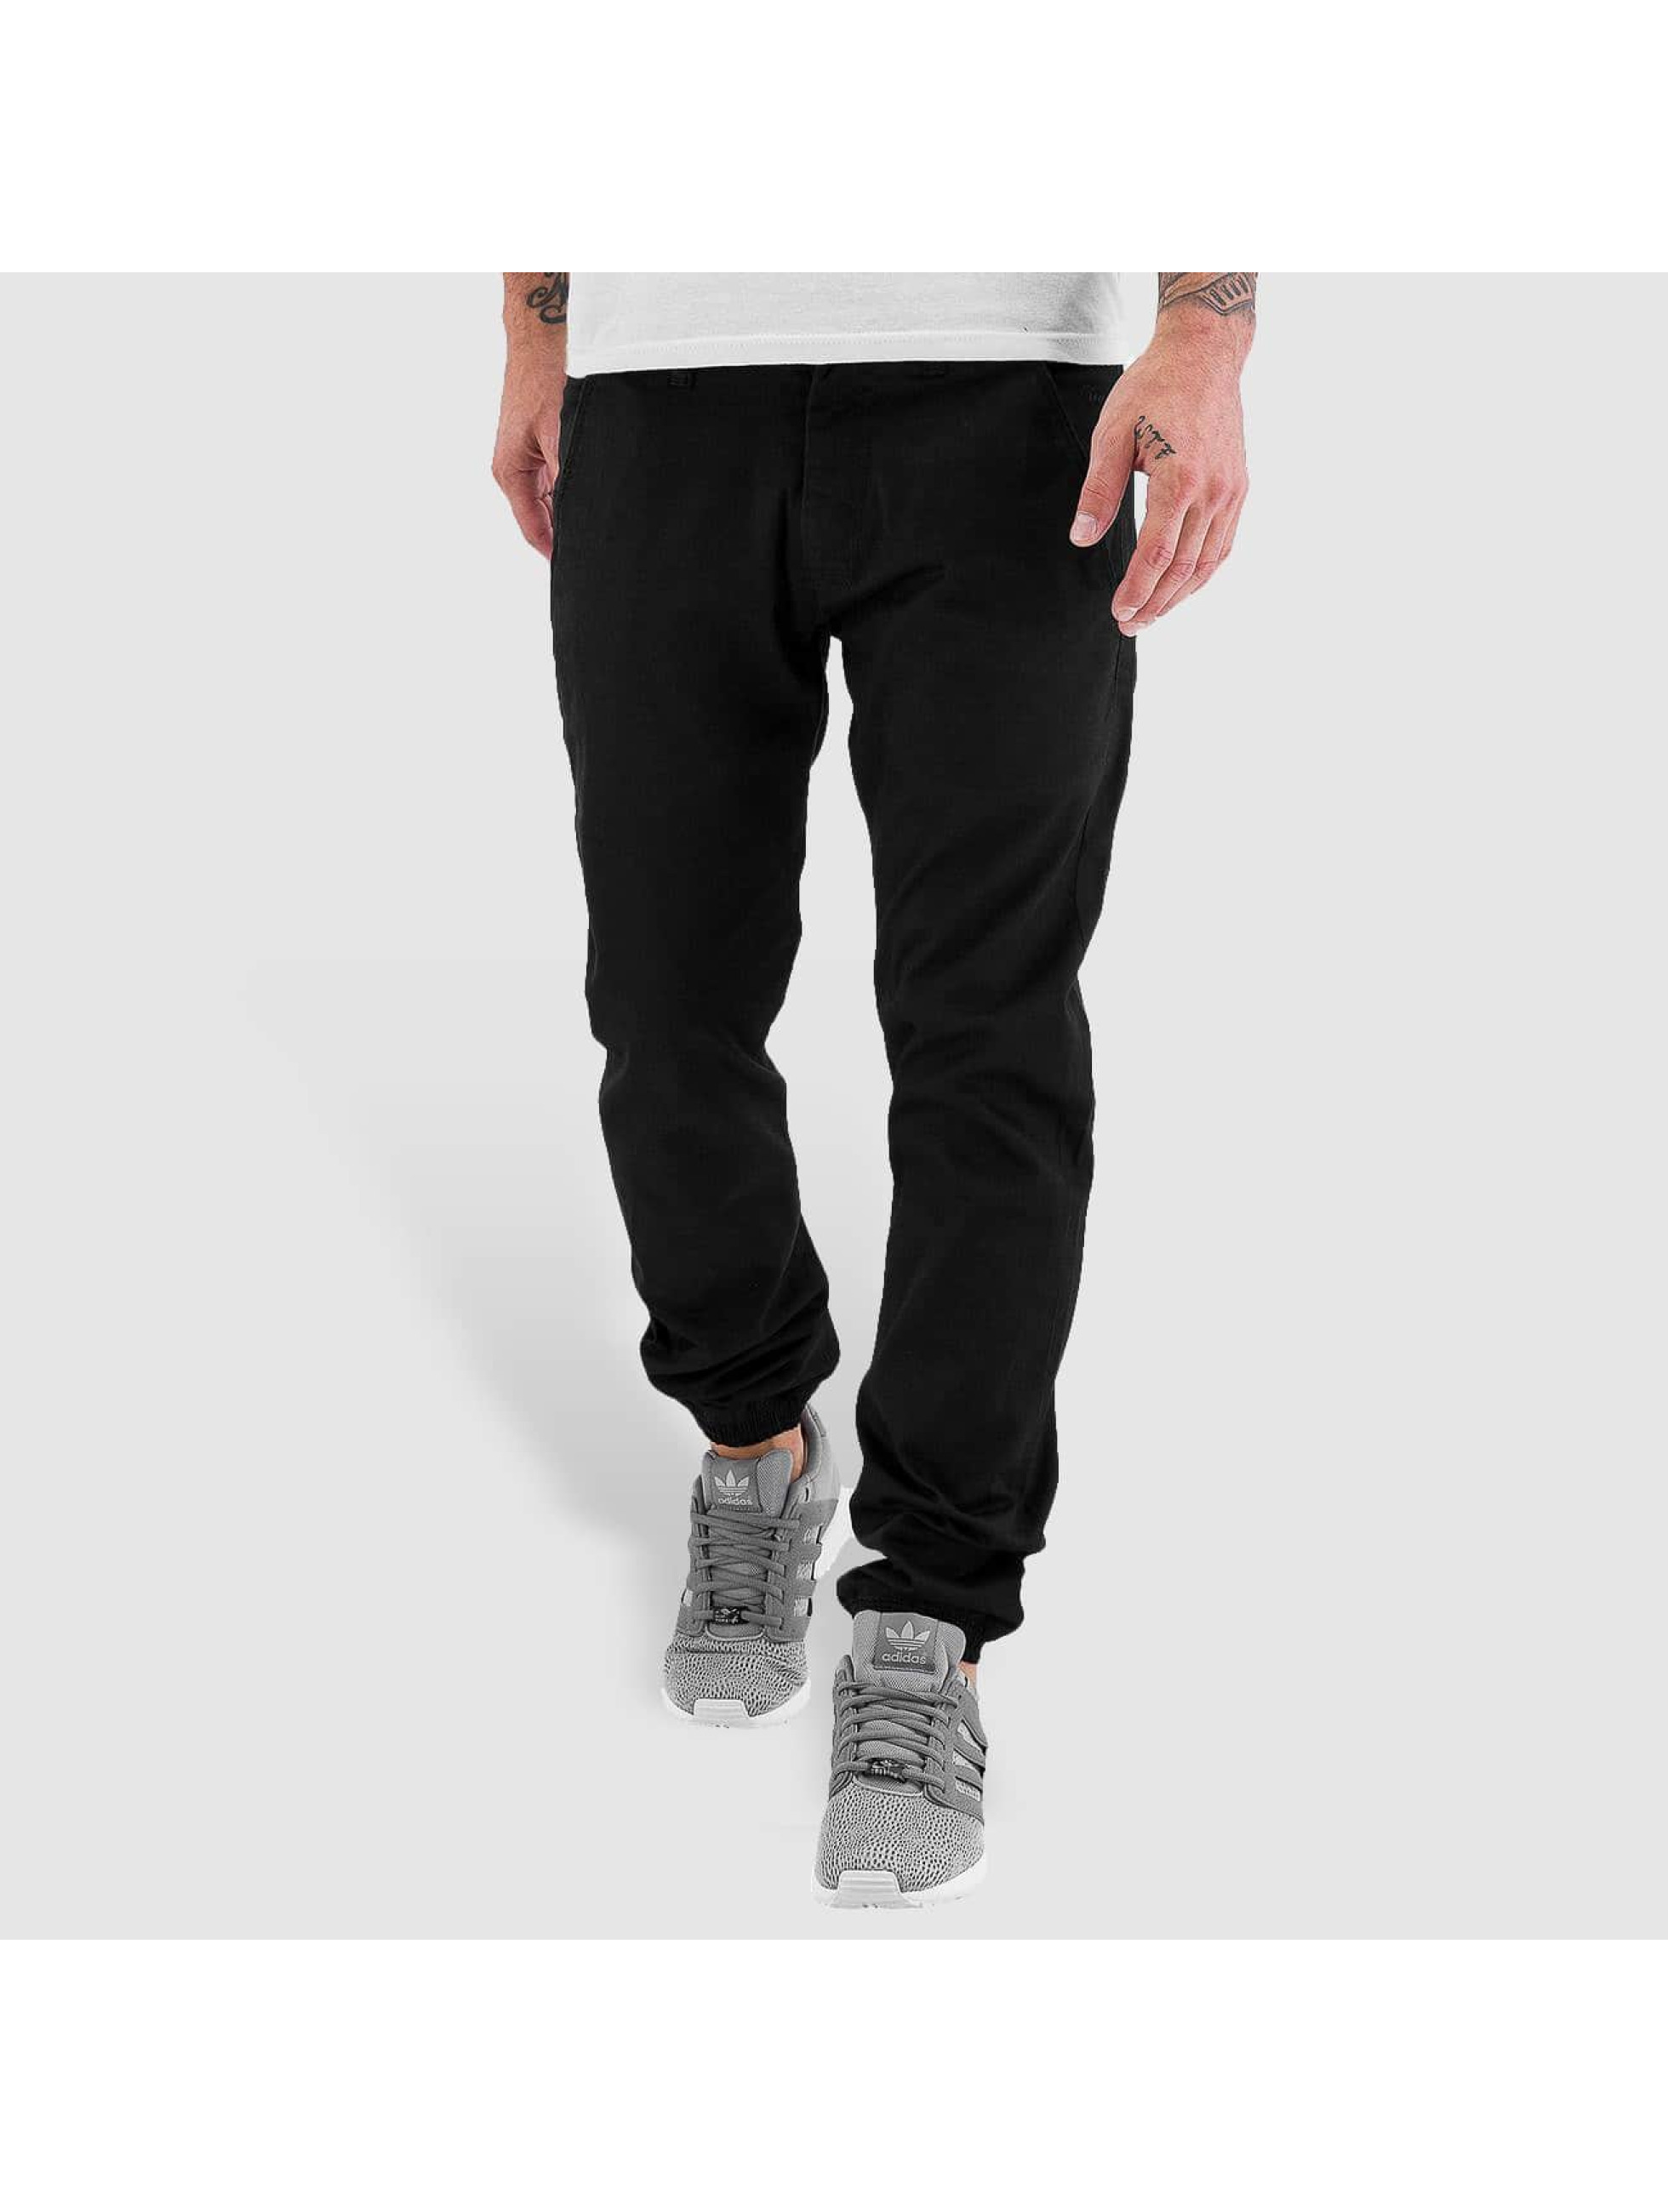 Reell Jeans Männer Chino Jogger in schwarz